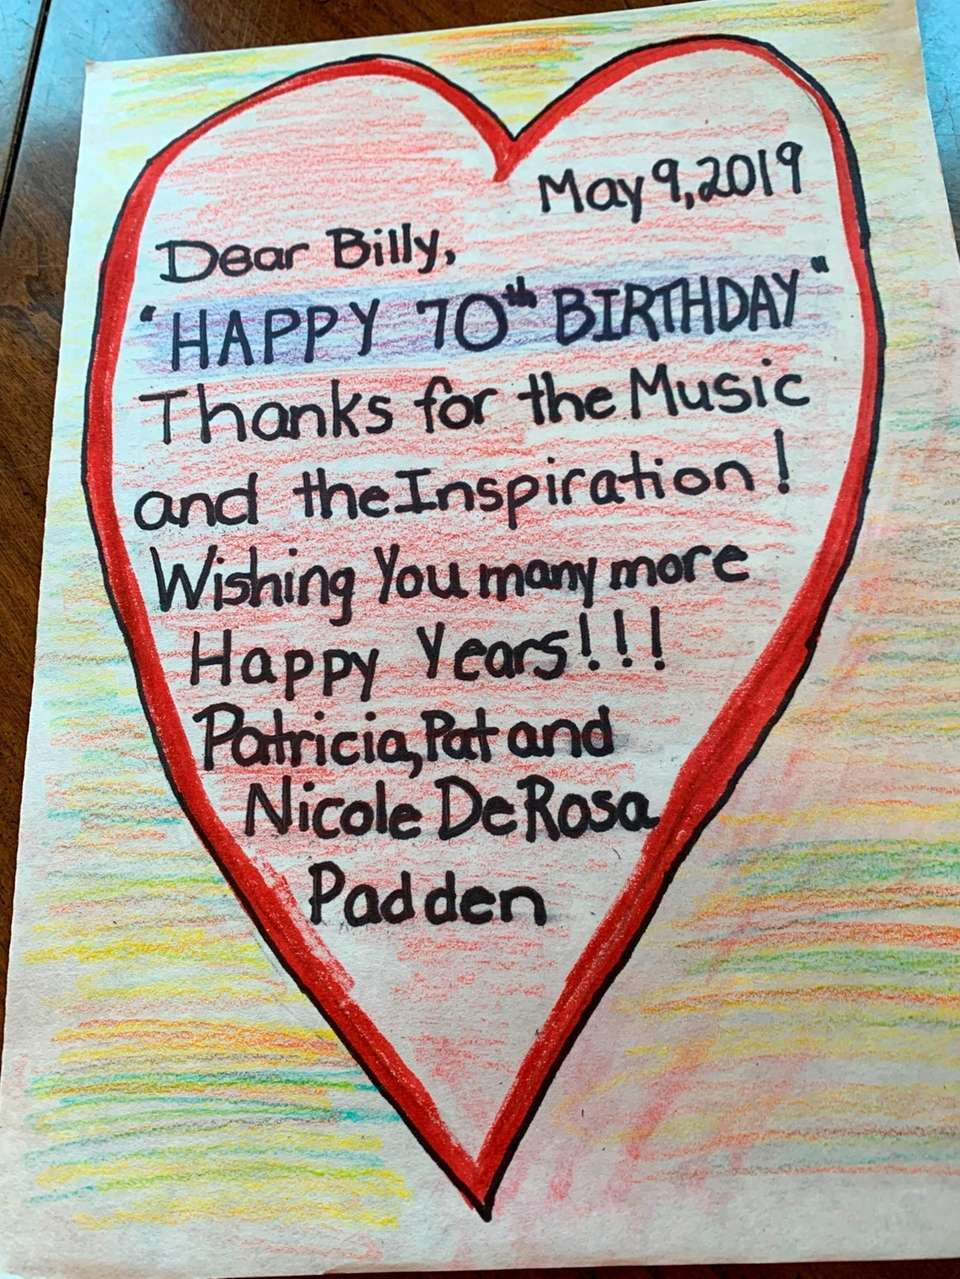 A handwritten birthday note for Billy Joel from